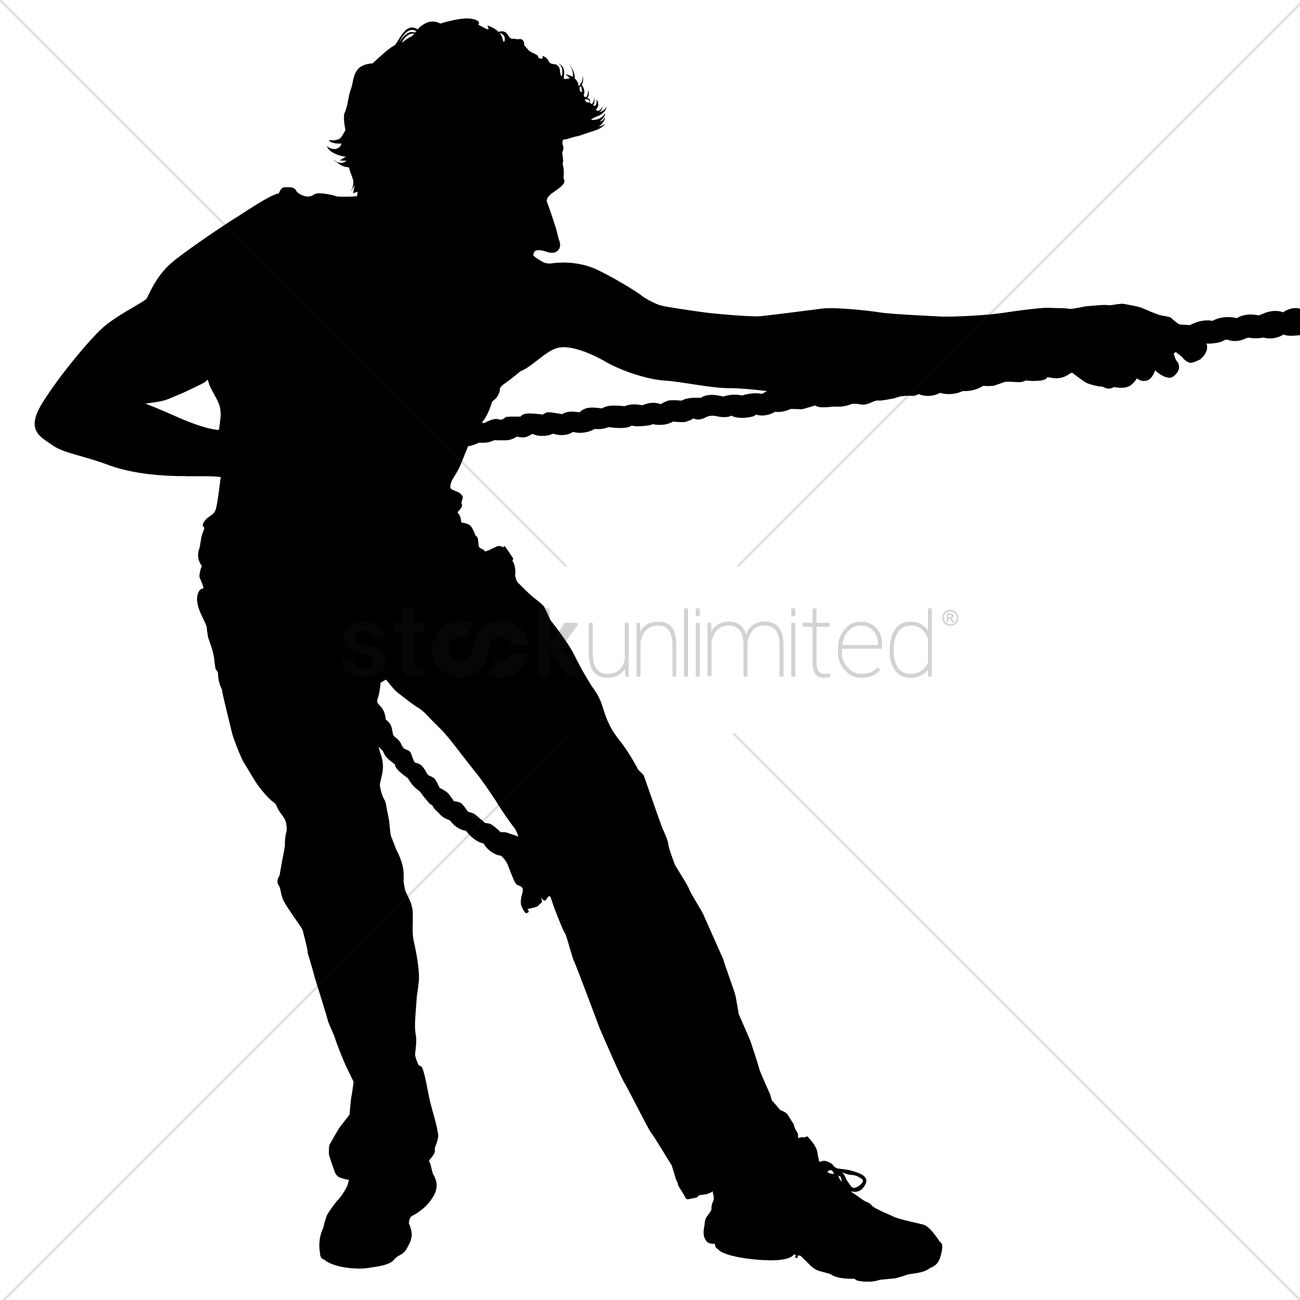 Man pulling rope clipart black and white image library library Businessman pulling a rope silhouette Vector Image - 1463609 ... image library library